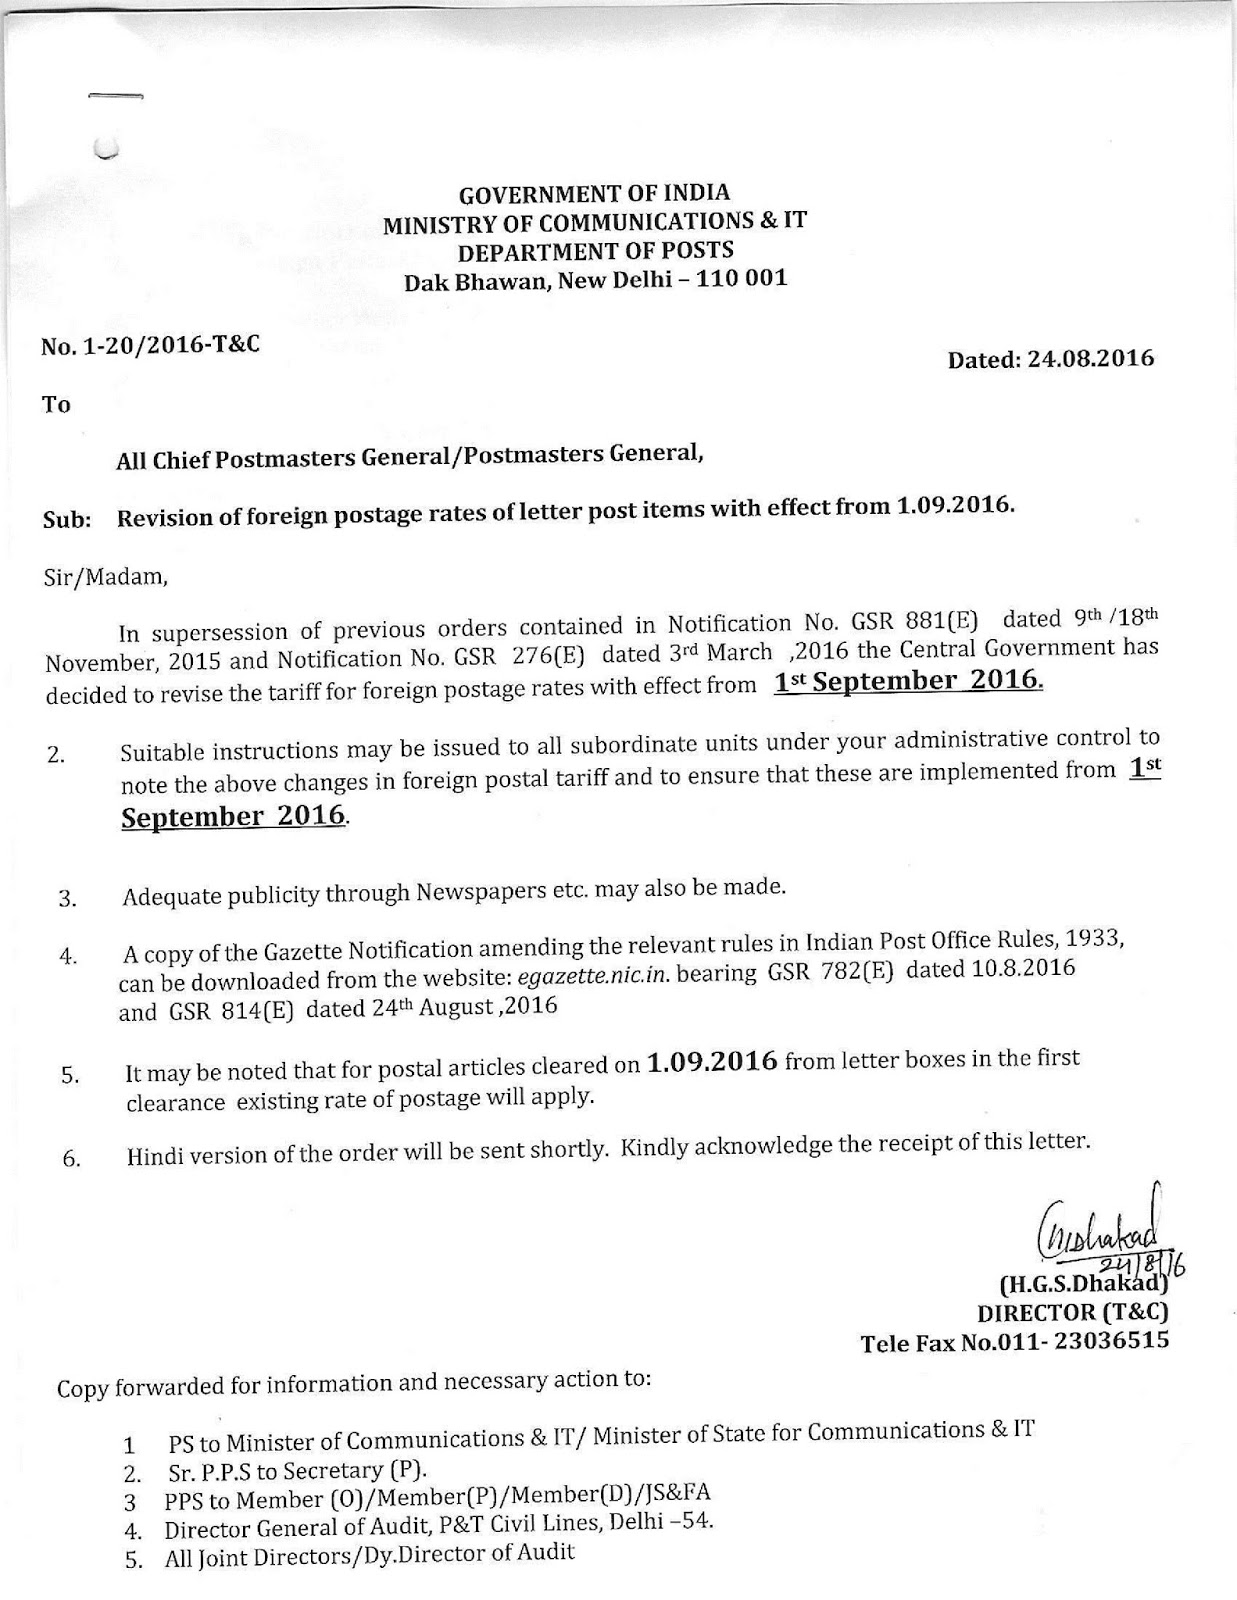 revision of foreign postage rates of letter post items with effect from 01092016 corrigendum